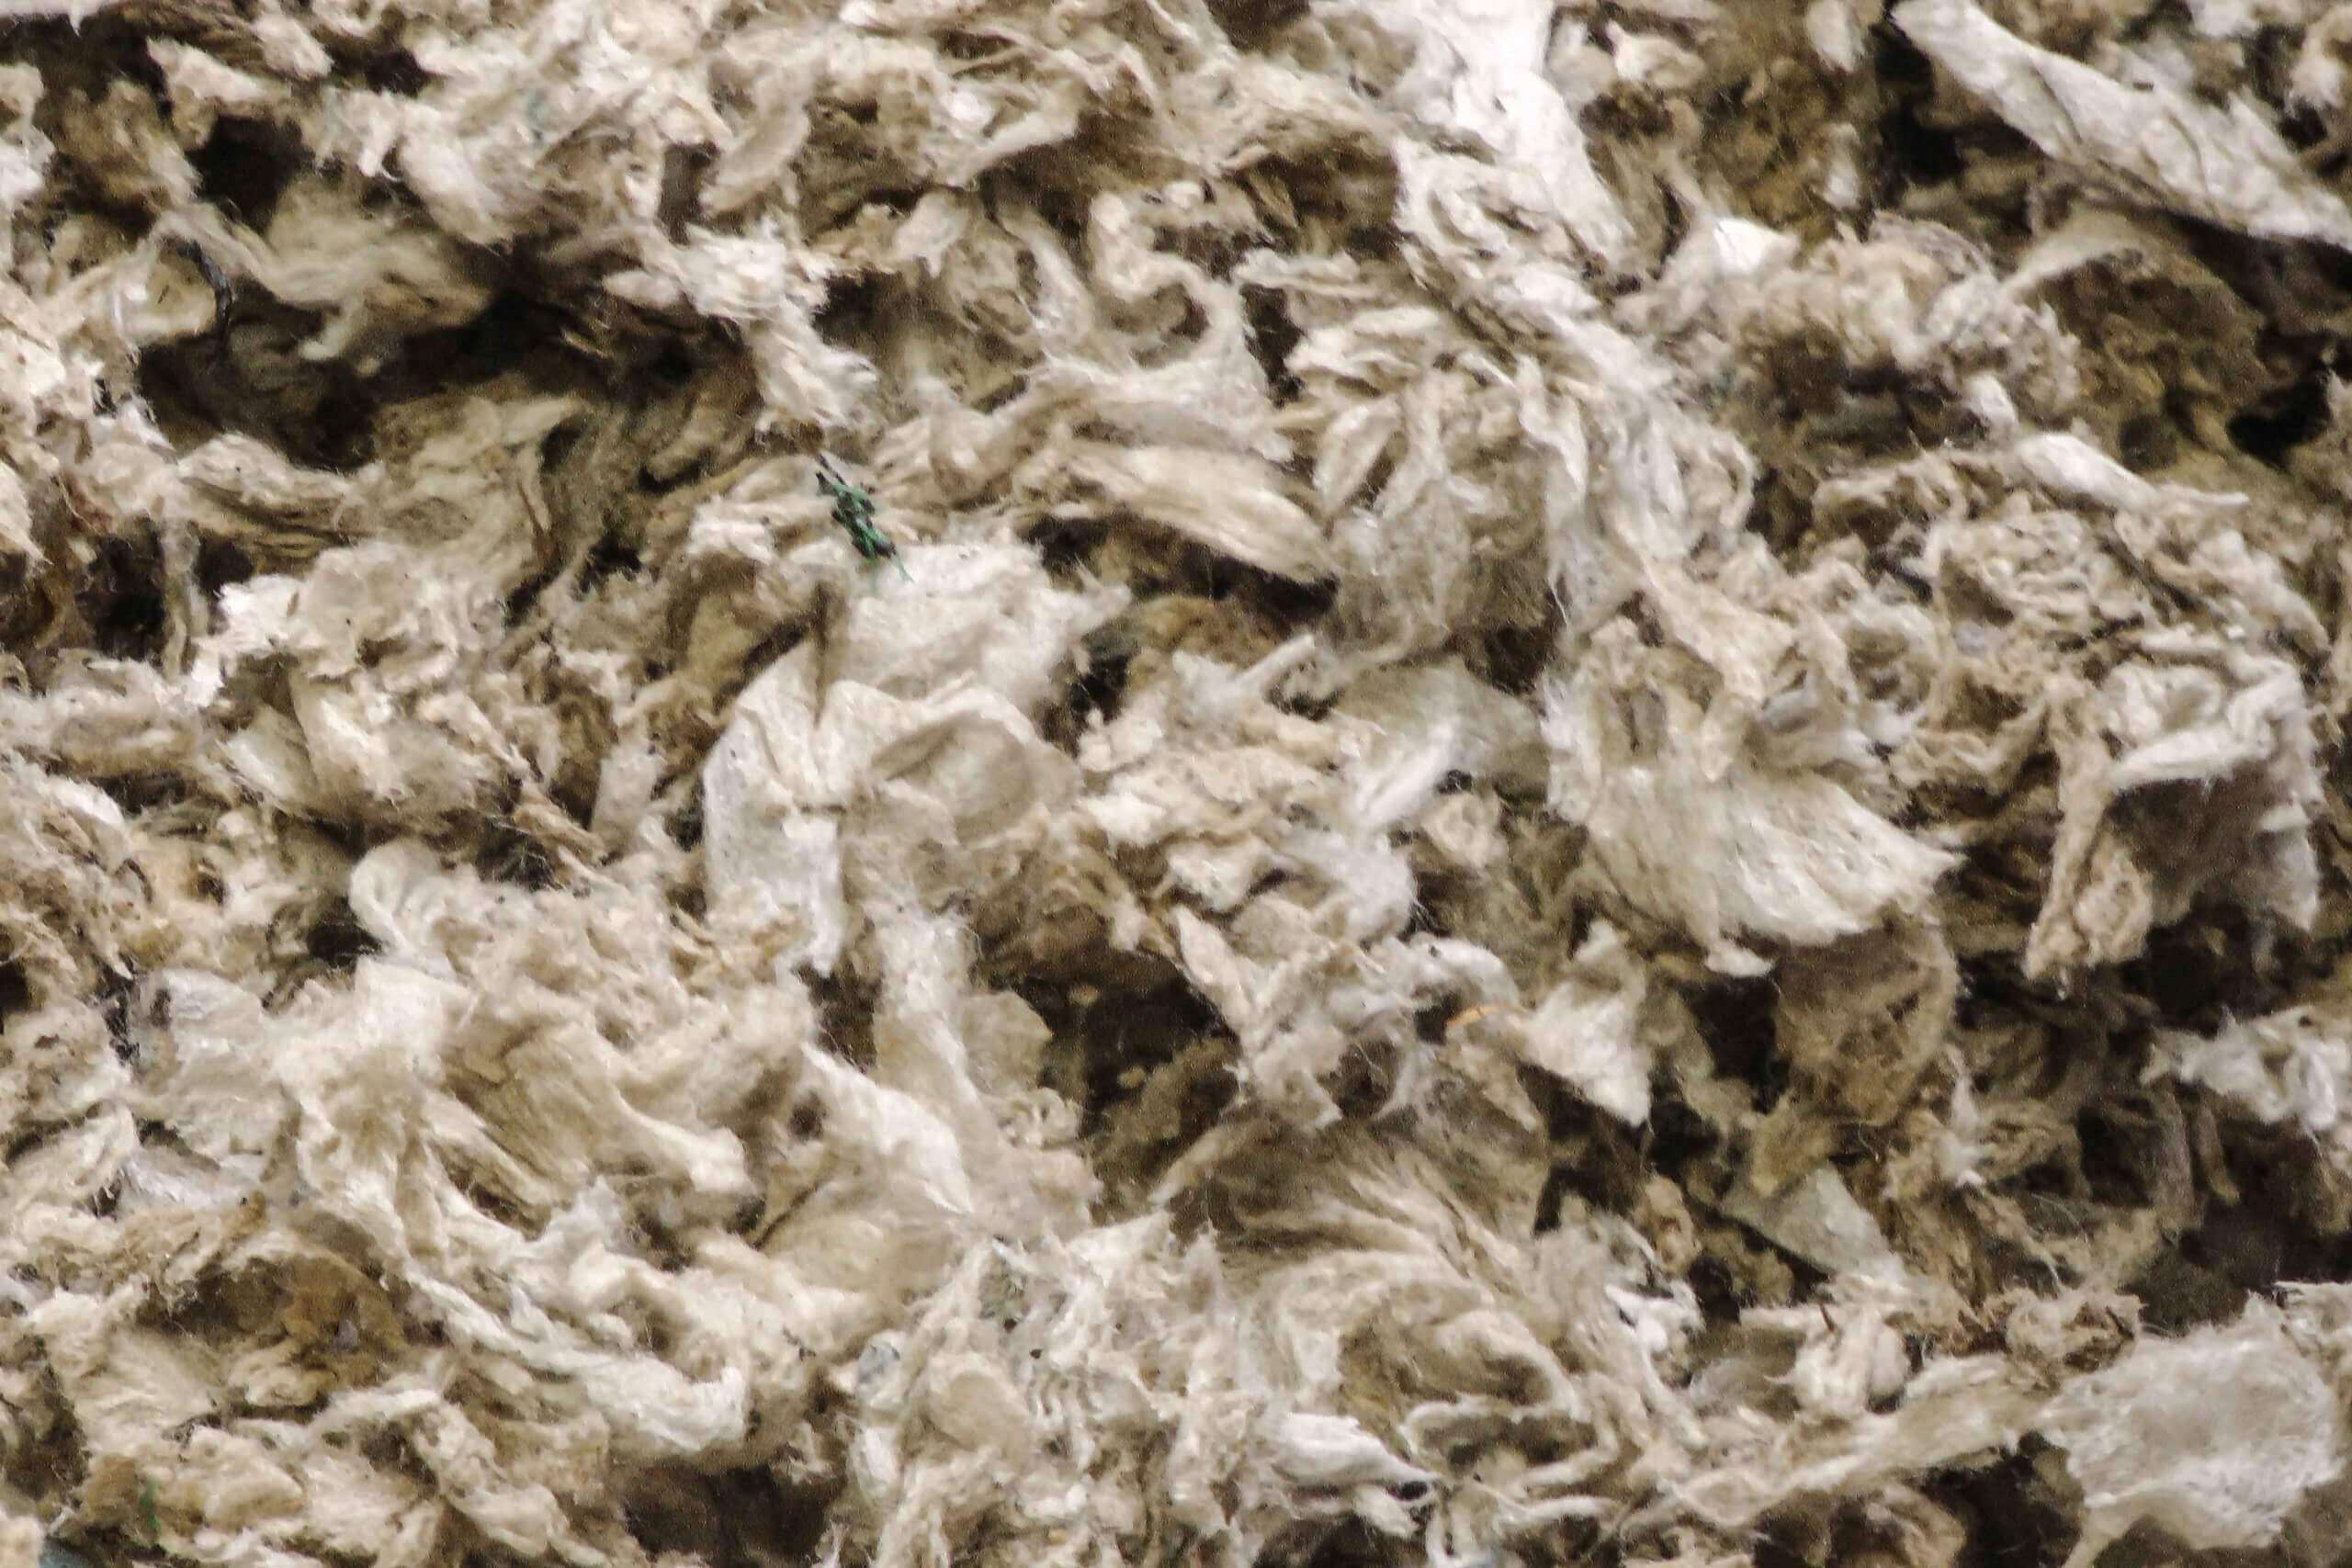 Even the dirty agriculture nonwoven material can be shredded and recycled